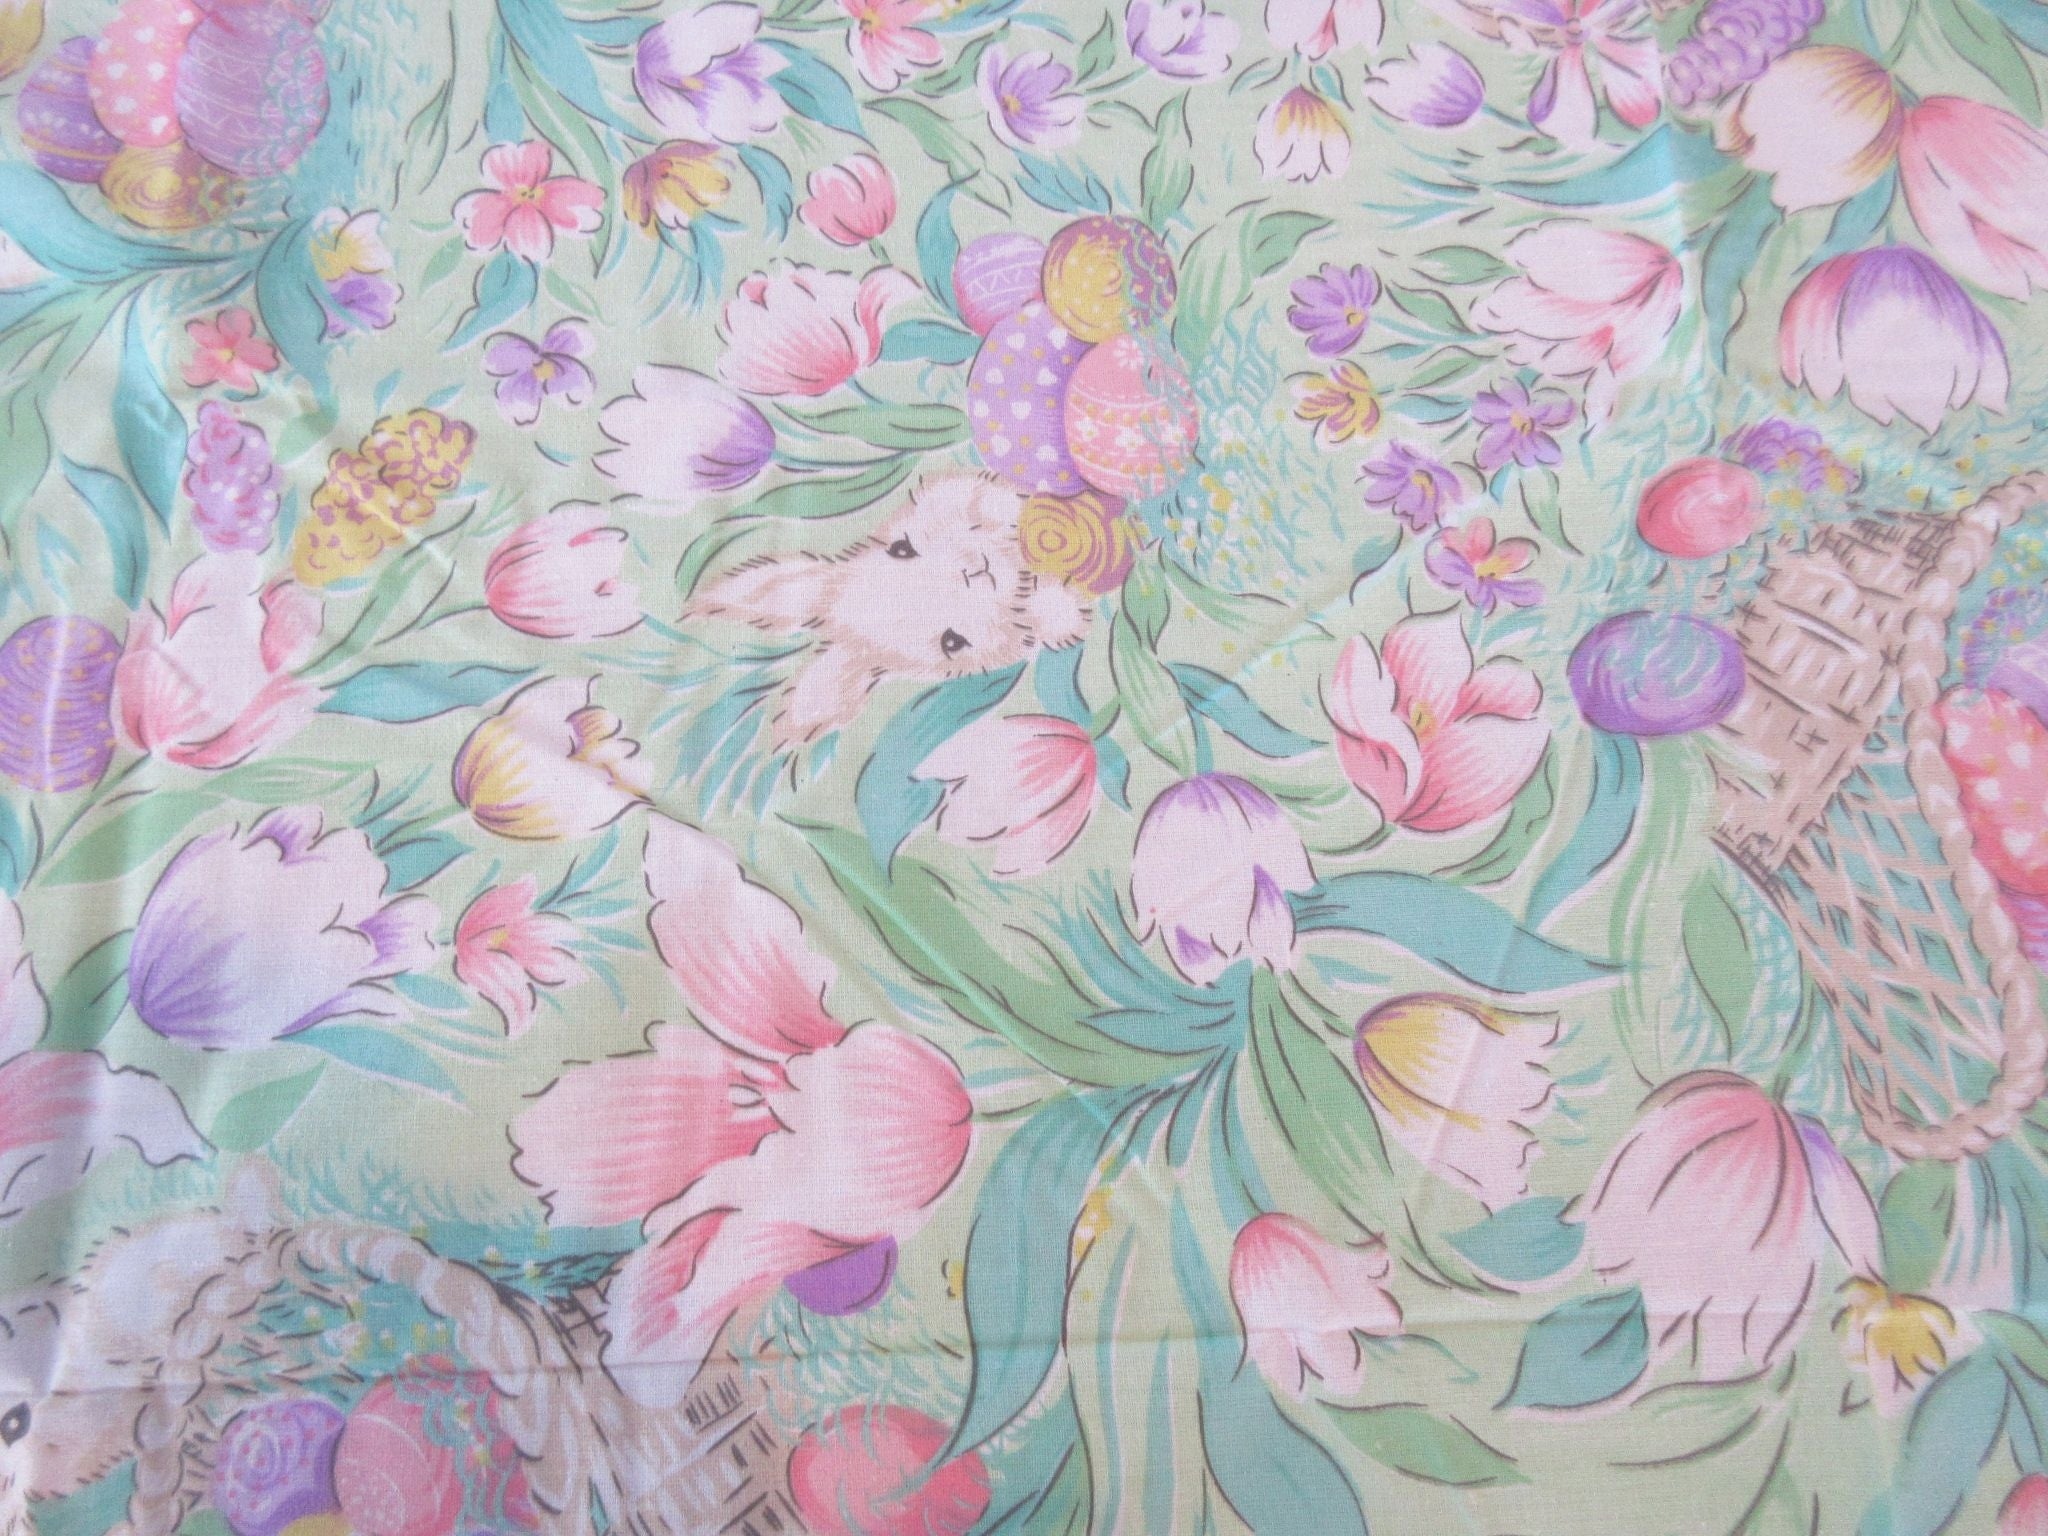 Copy of a Pastel Tulips Eggs Easter Bunny MWT Retro Printed Tablecloth (70 X 51)